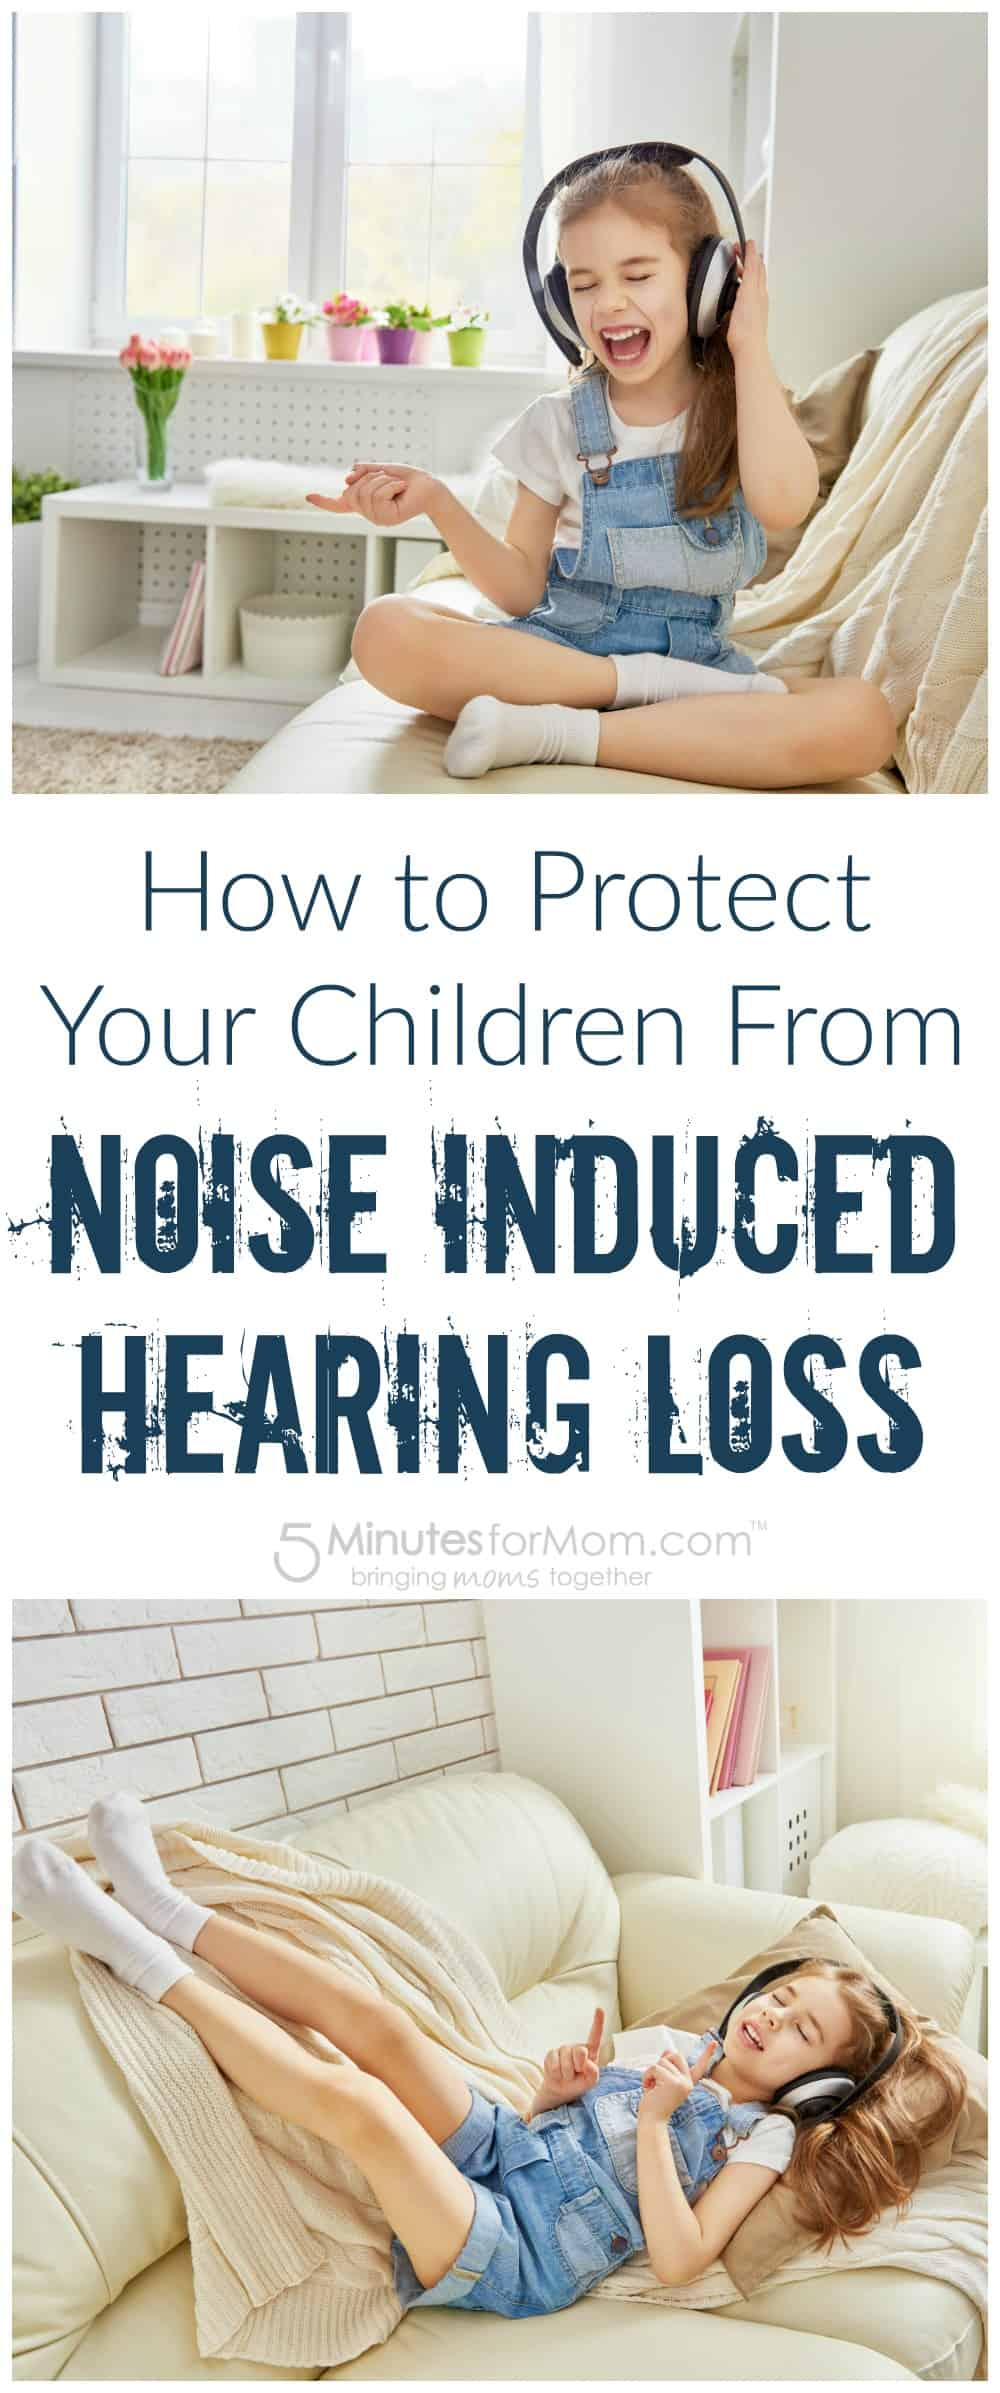 How to Protect Your Children from Noise Induced Hearing Loss